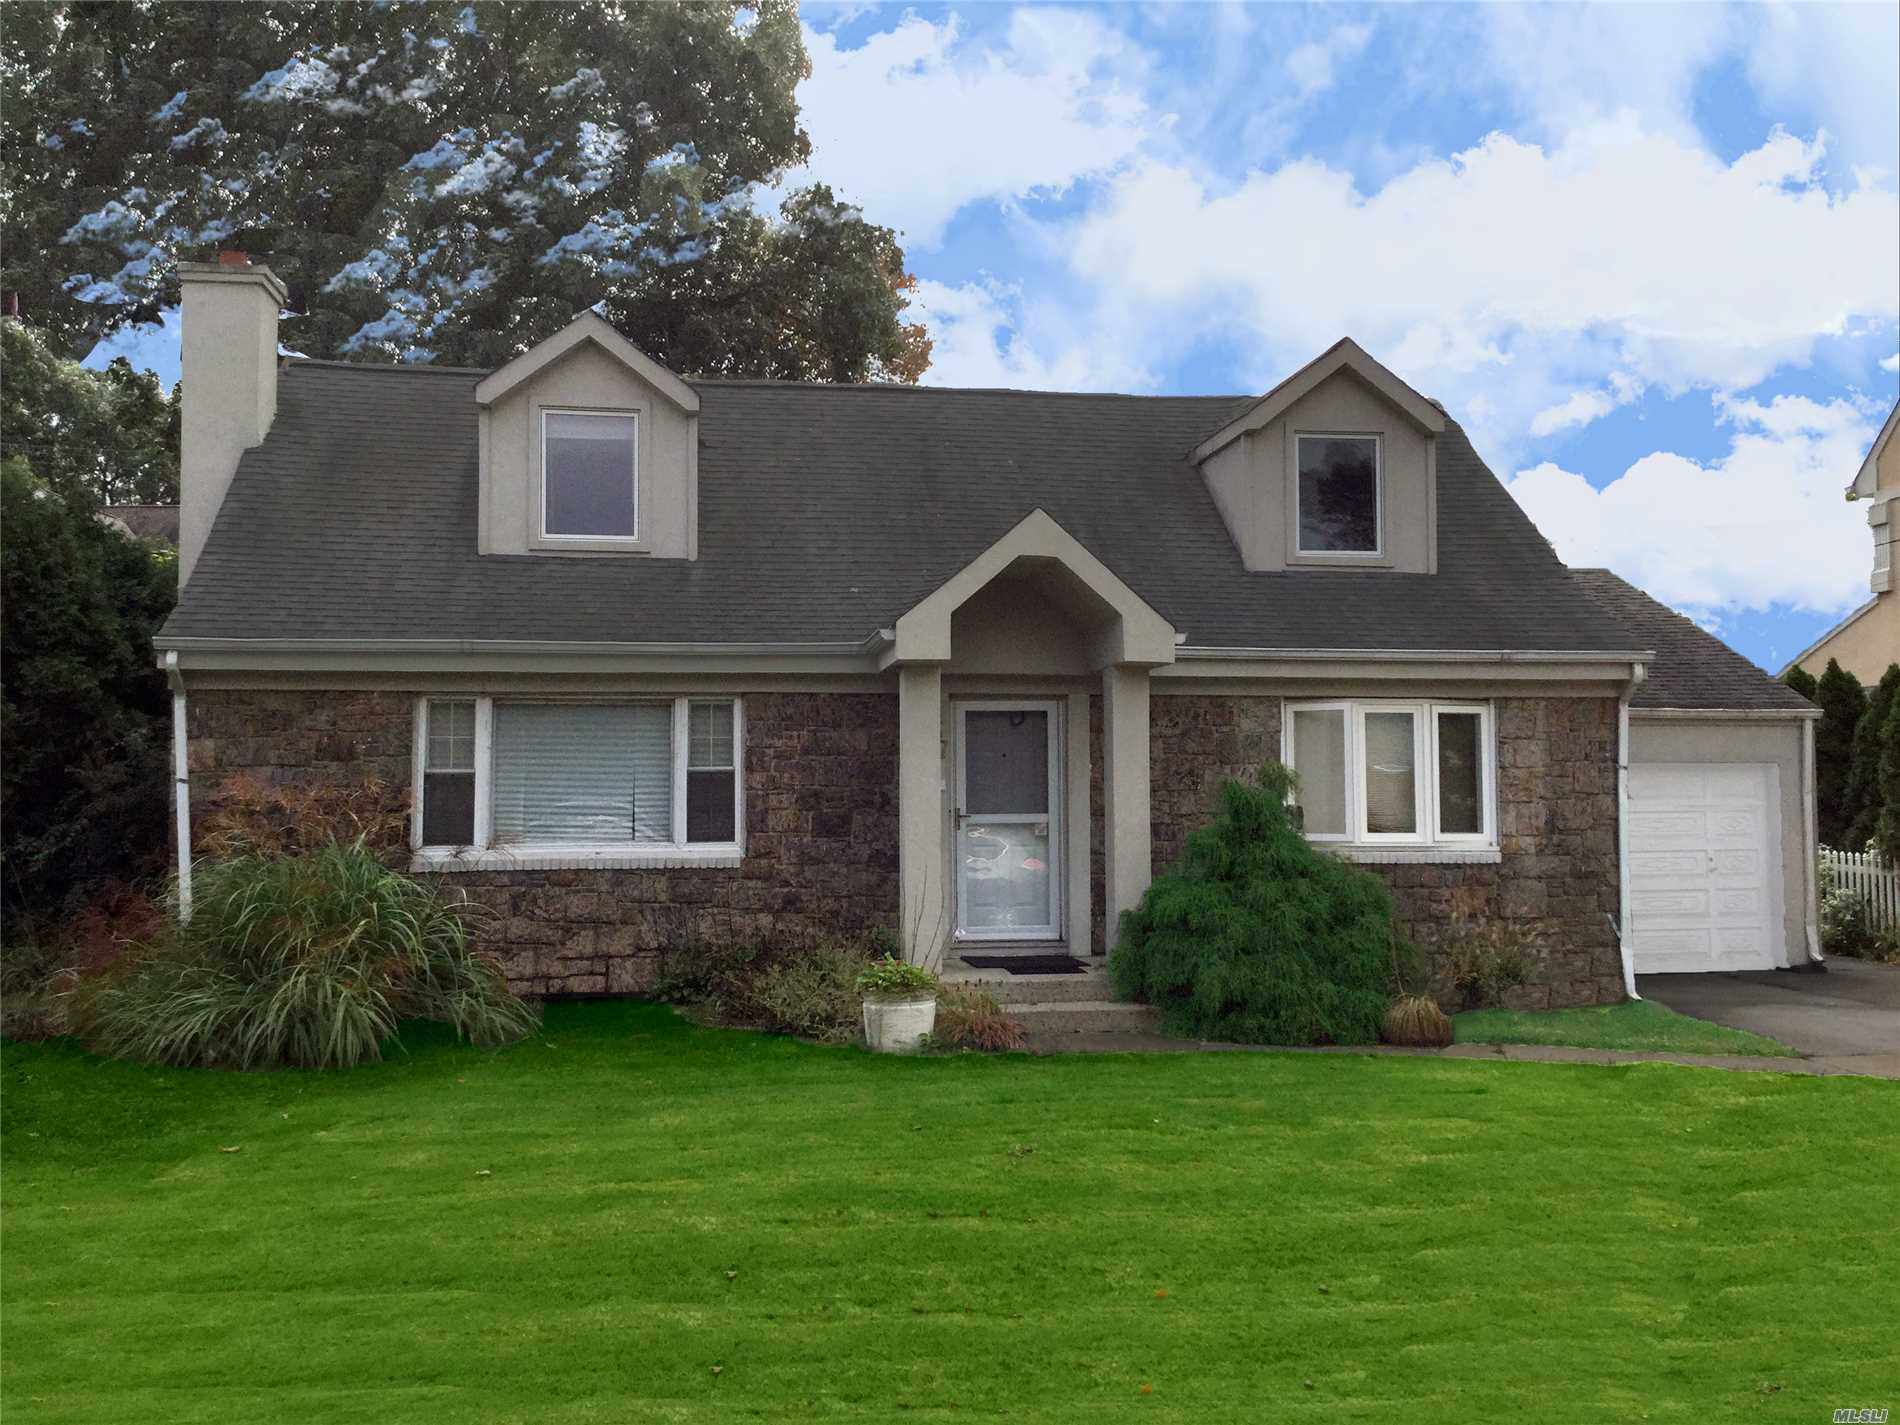 ***Seller Will Pay School Taxes For 2018/19** Expanded Cape In The Heart Of The Dogwood Area. Rear 20 X16 Ft Family Room Extension W/ Fpl & Sliders To X/Lg Yard. Huge Upstairs Bedrooms, Updated Baths, Family Rm Can Support Future Second Floor Enlargement, Pool Is A Gift And Has Access To Fbth. Updated Electric. Taxes In Process Of Being Grieved .